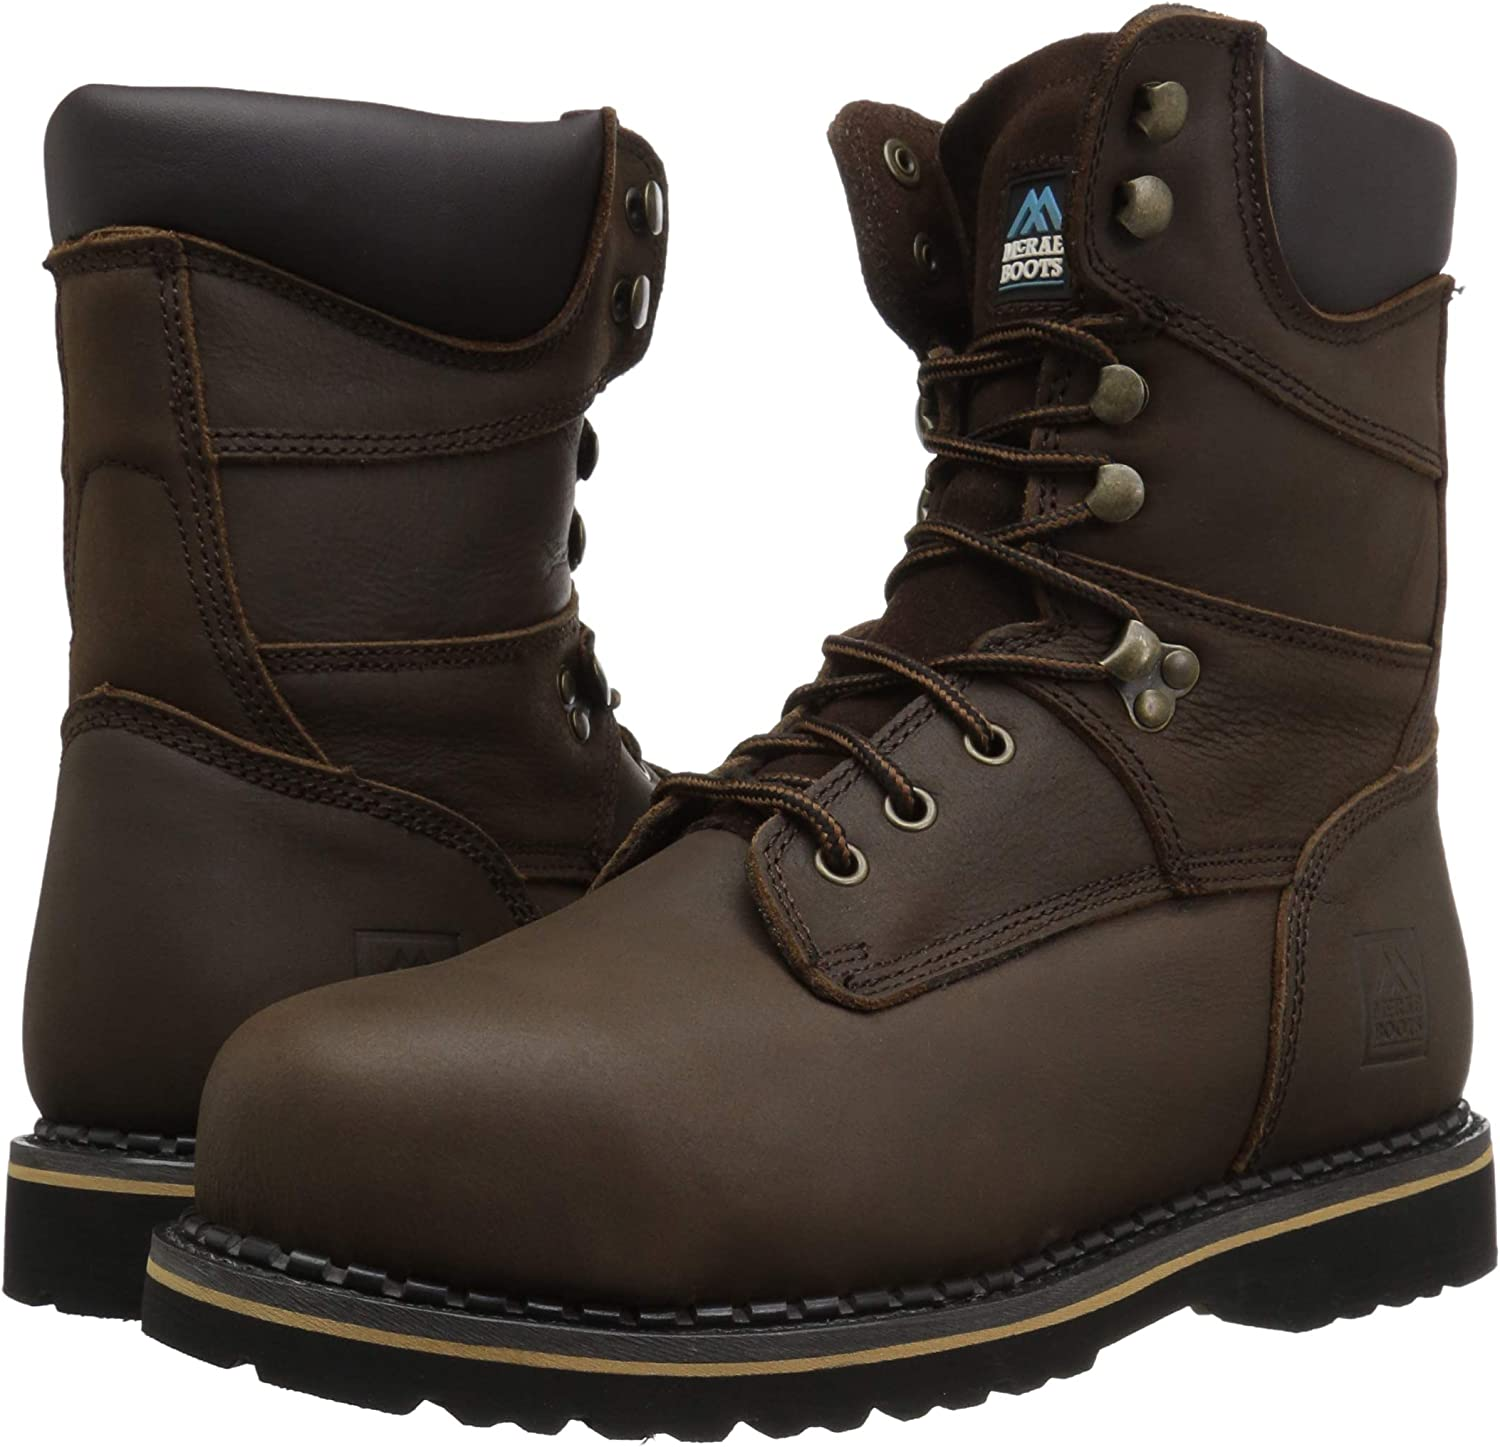 MCRAE Industrial Mens 8 Safety Toe Lace-up Boots MR88344